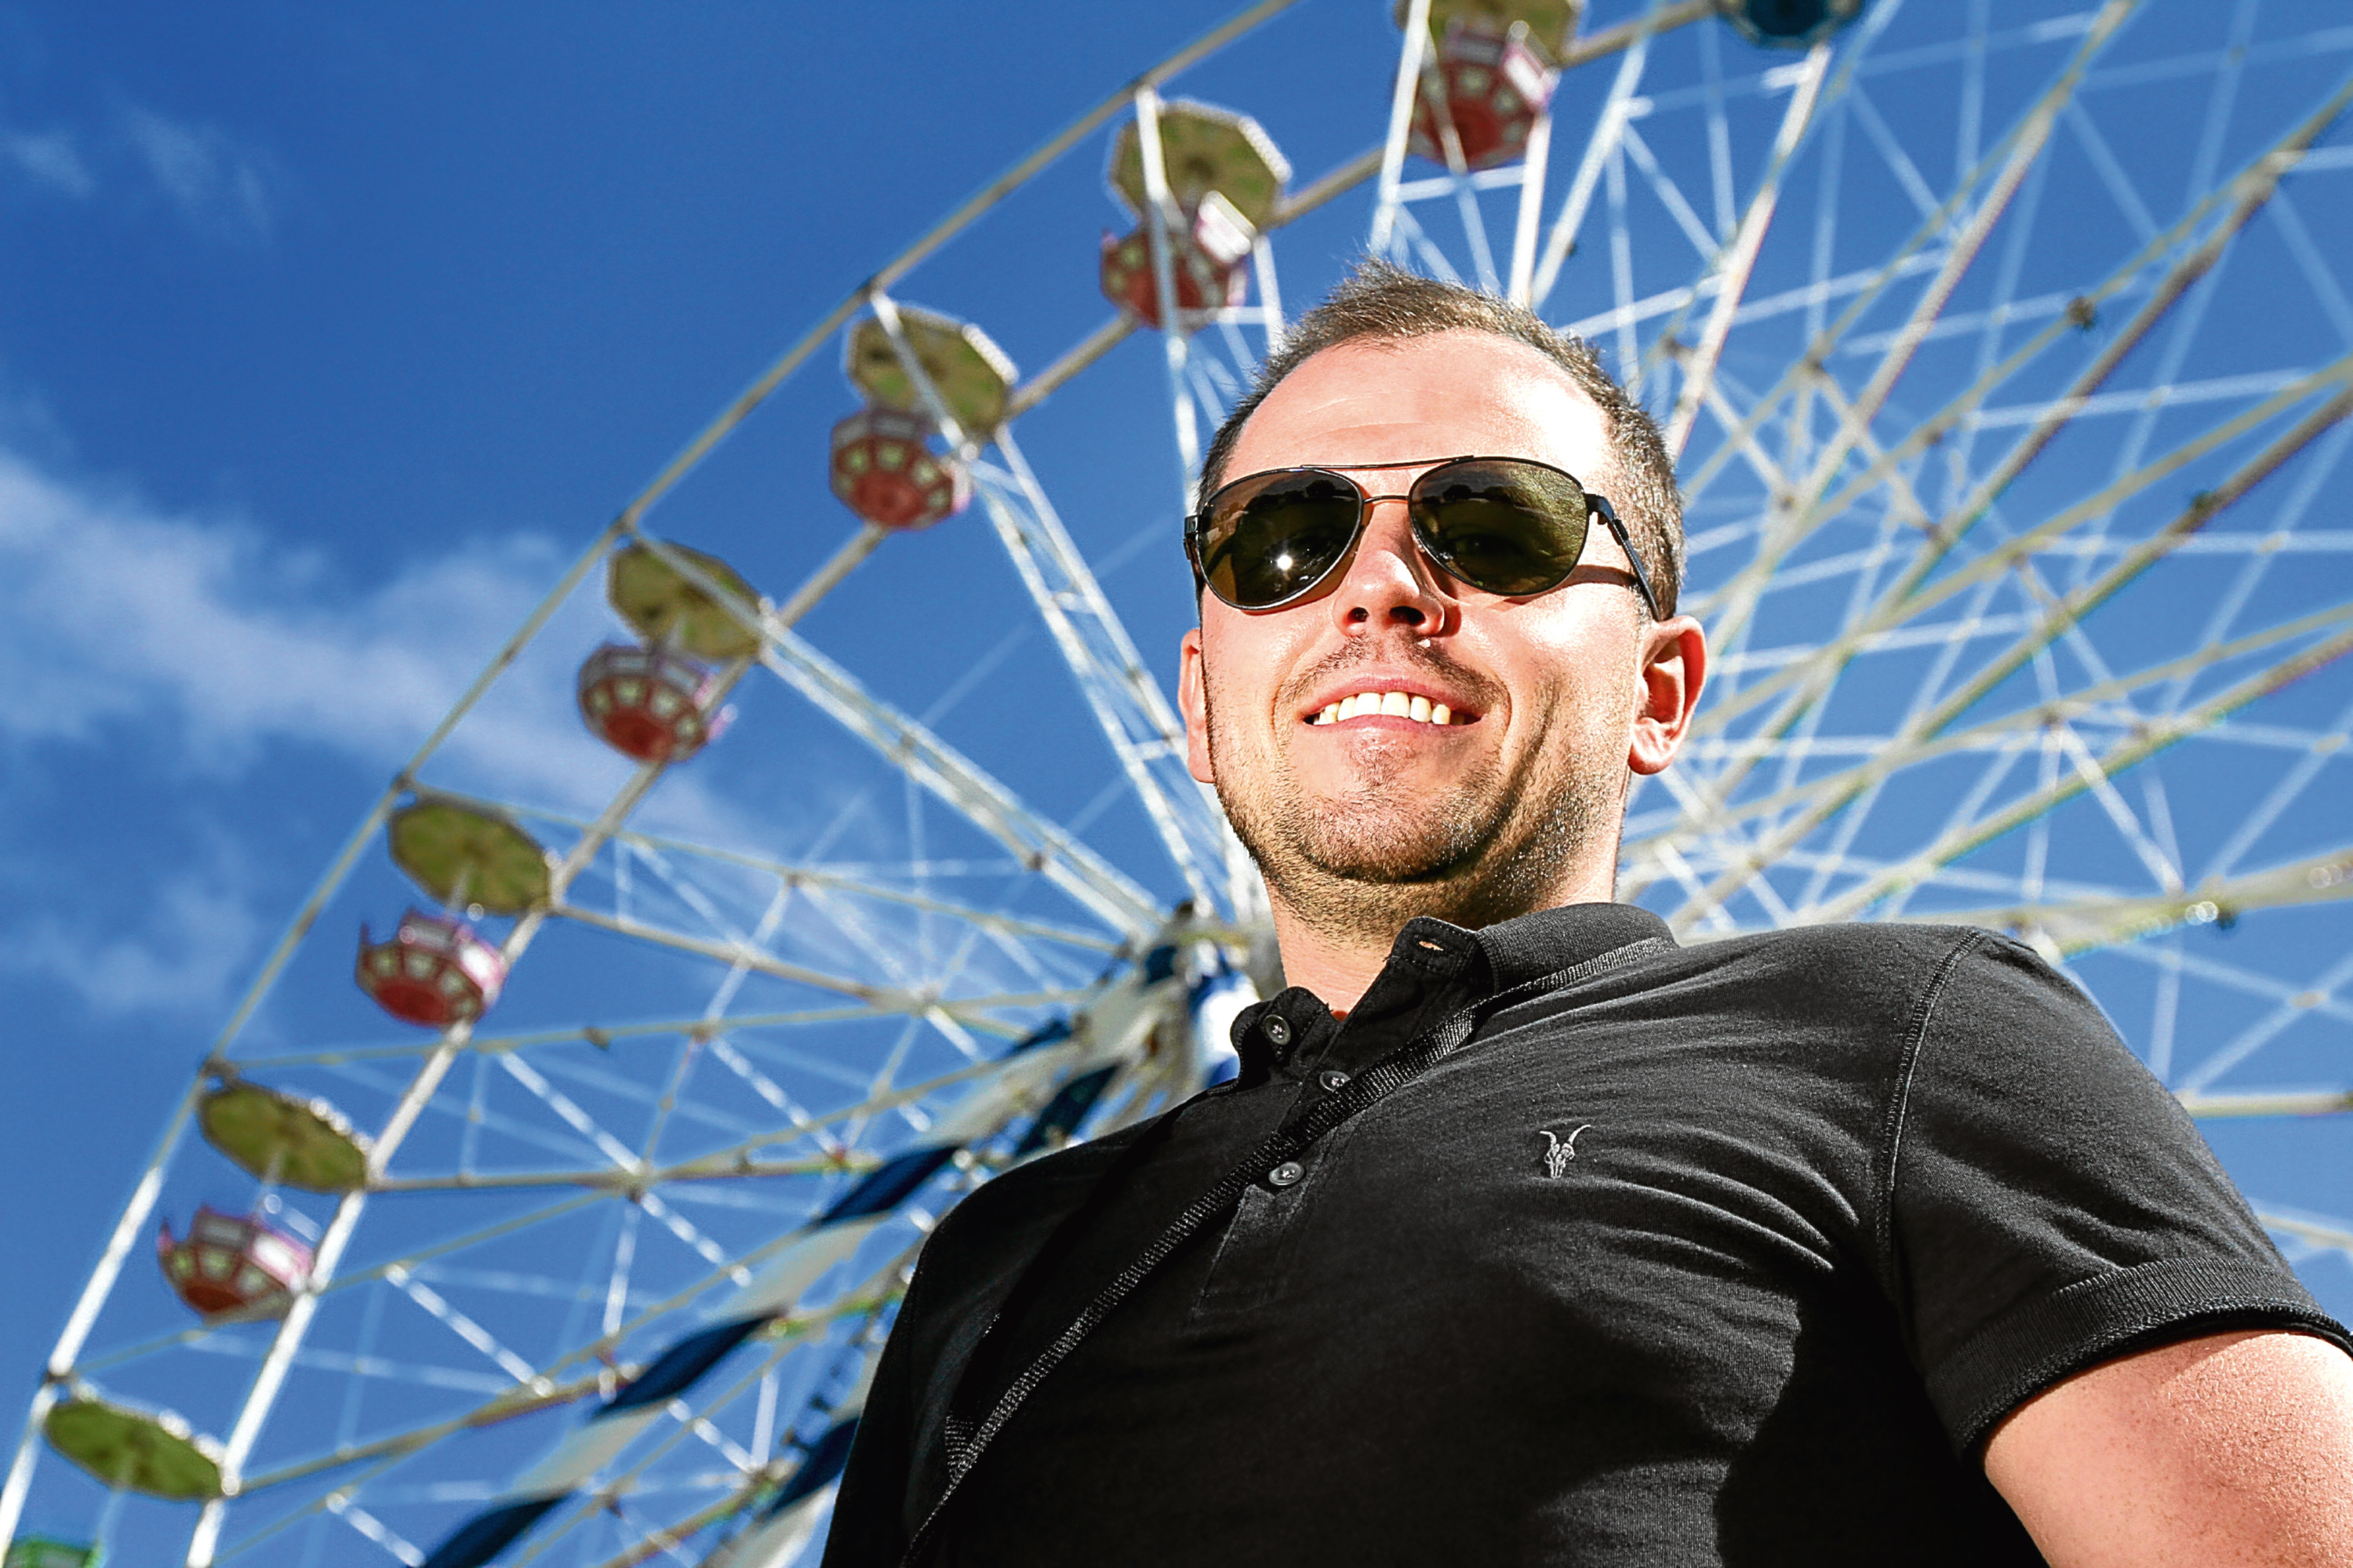 Craig Blyth pictured at the Carnival Fifty Six site